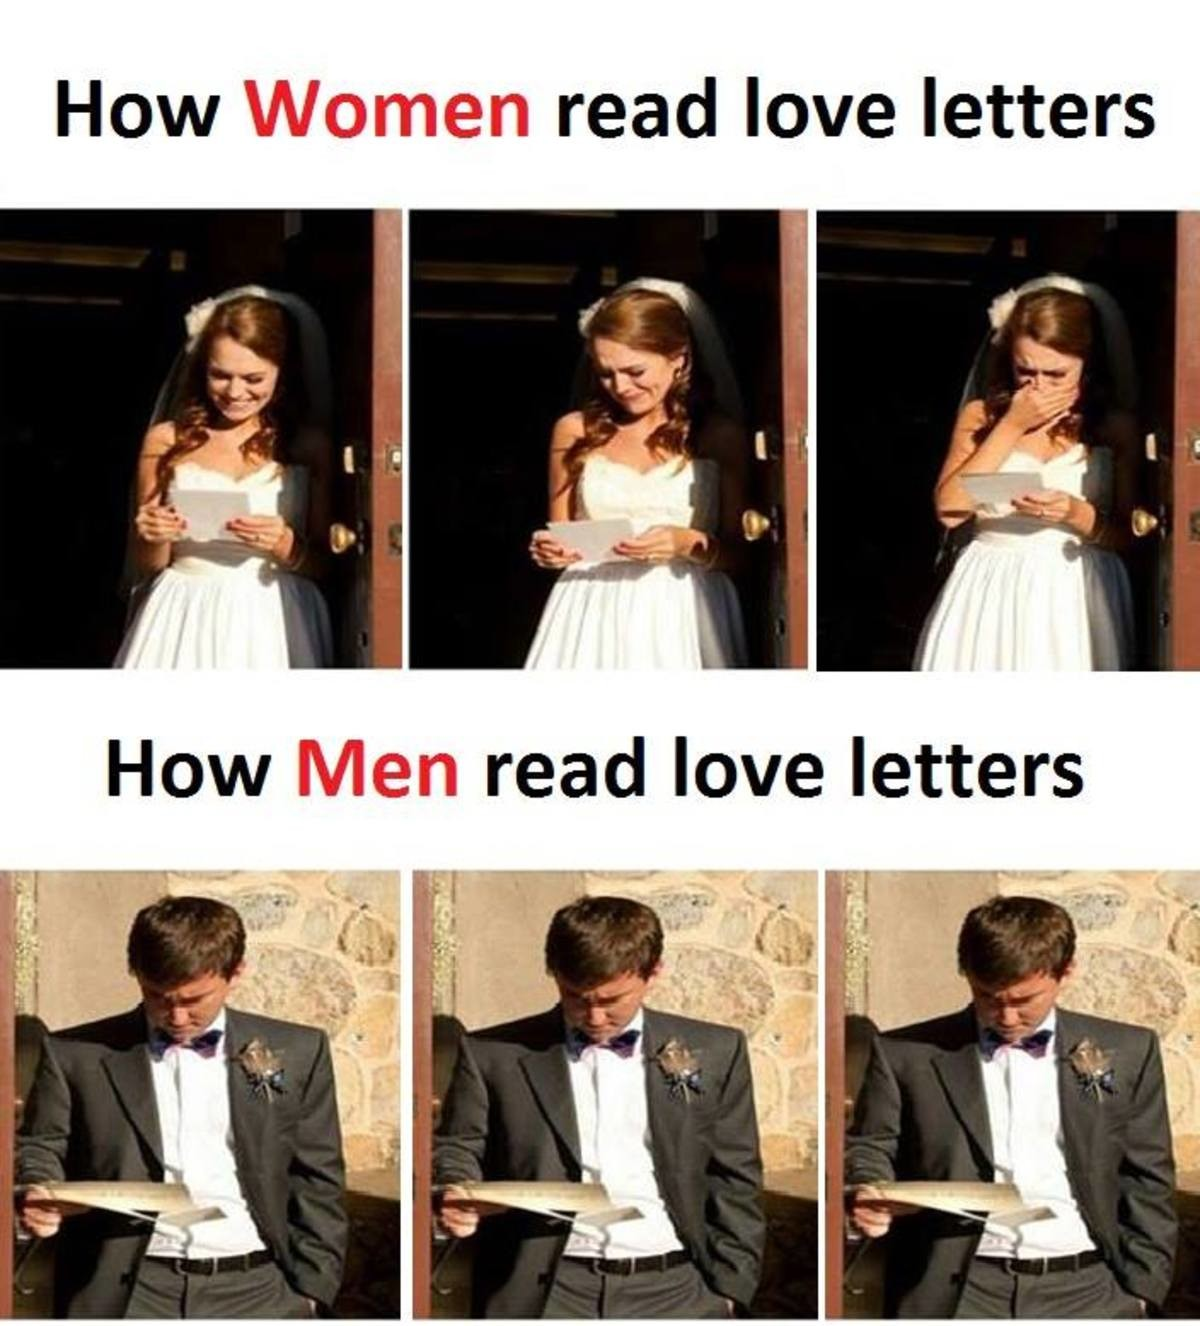 Different between WOMAN and MEN :))). . How Women birl/ rlly' l. r love letters. How I read love letters. Not really that jaded just could not resist.